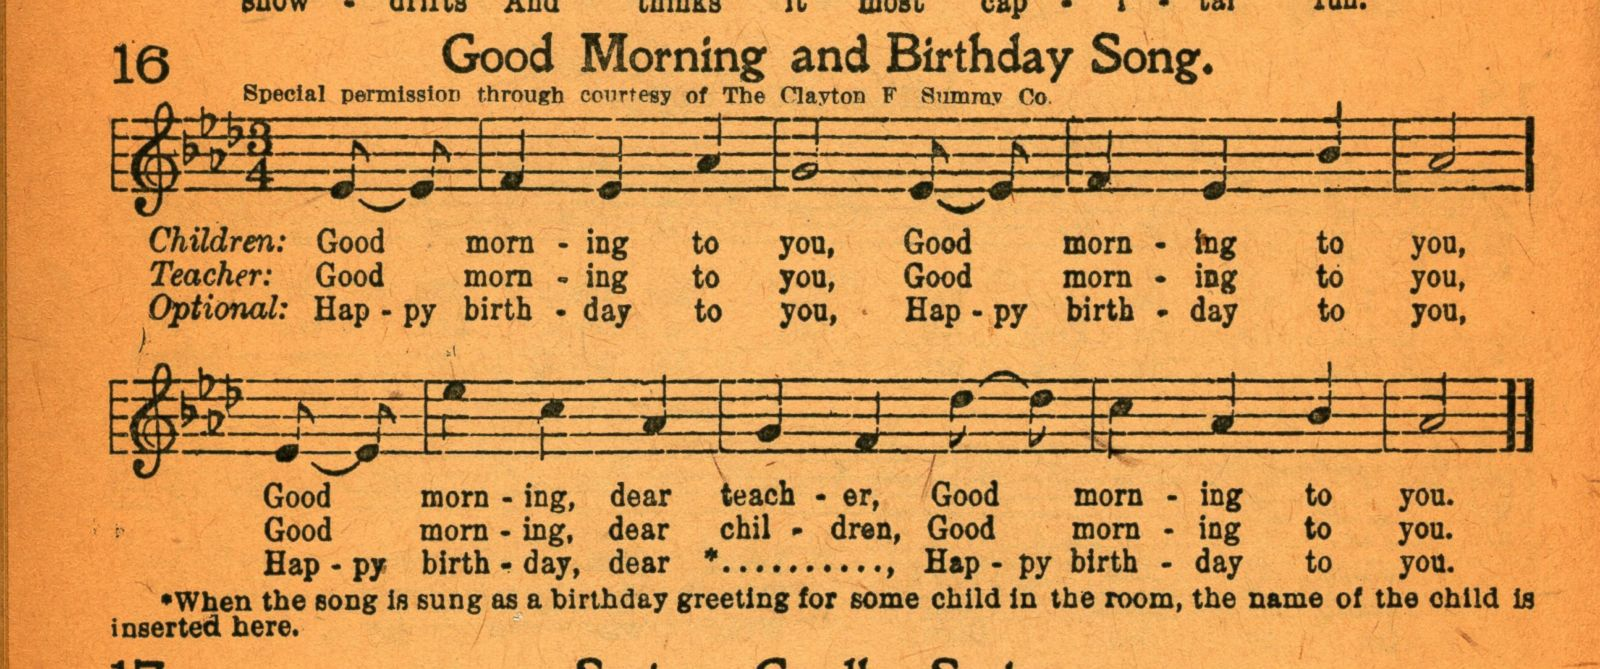 "PHOTO: The plaintiffs lawyers claim this songbook shows that the publisher authorized the publication of the lyrics to ""Happy Birthday to You"" in 1921 or 1922"